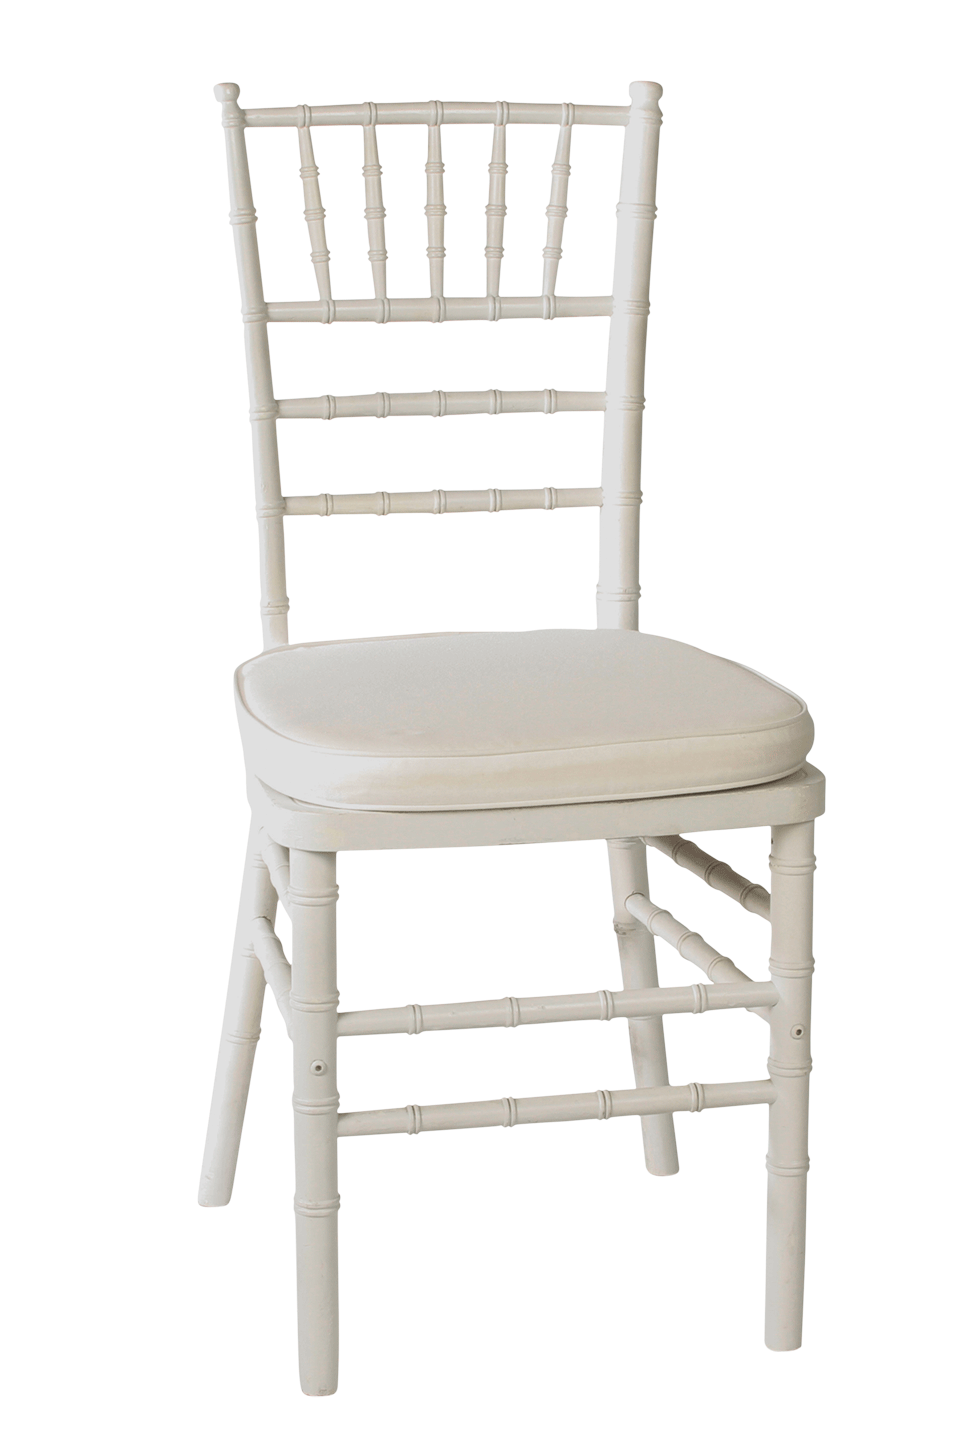 Chavari white rental bright. Furniture clipart wedding chair